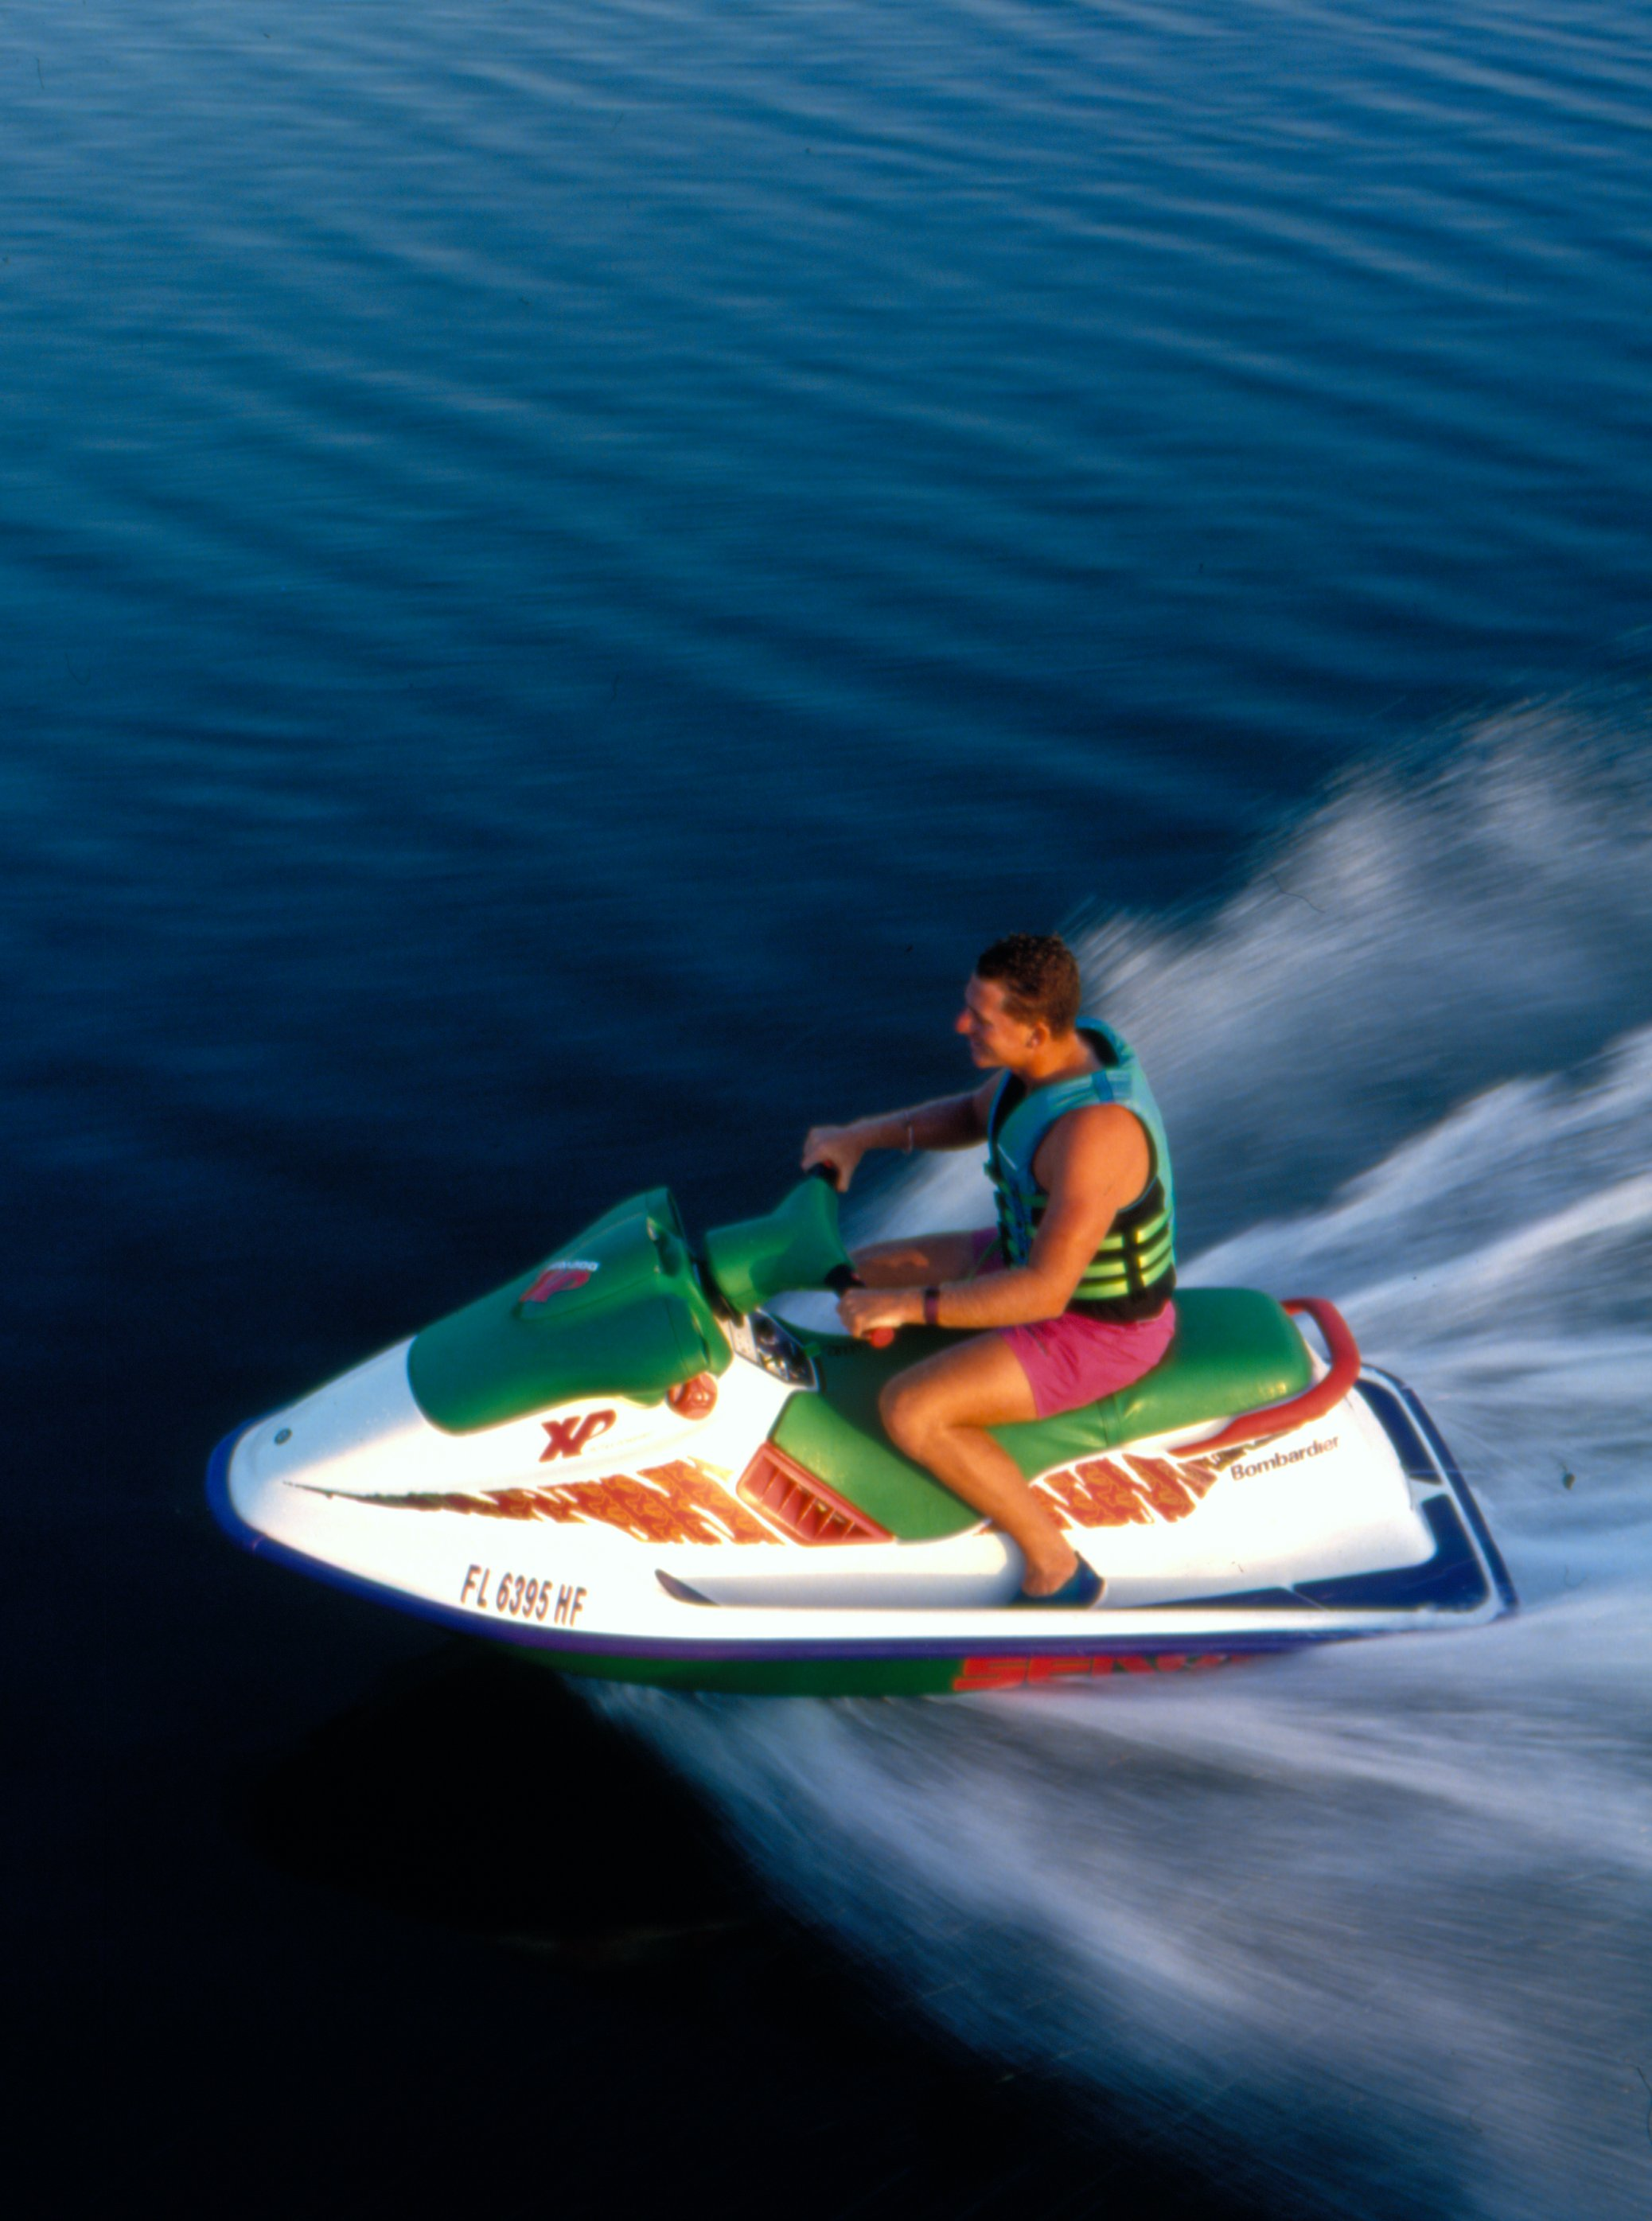 xp sea doo onboard rh blog sea doo com 94 seadoo xp owners manual 1994 seadoo xp manual